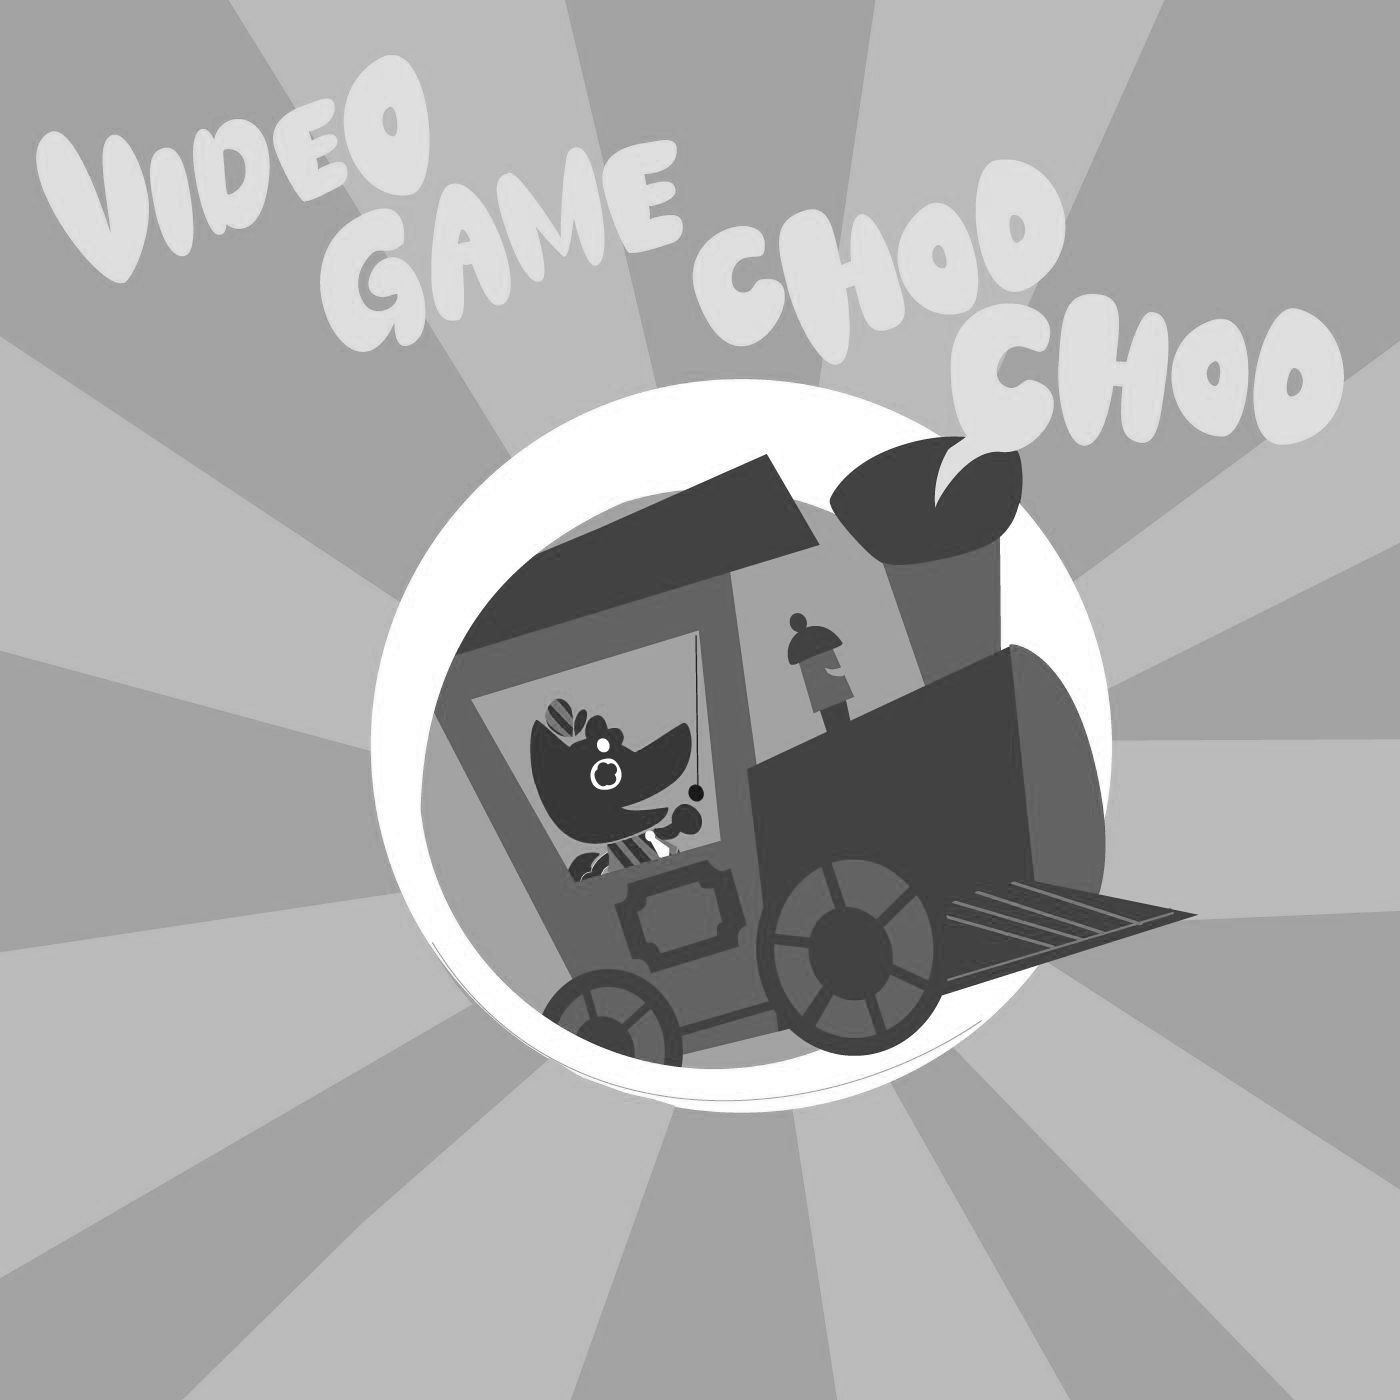 Video Game Choo Choo Classic